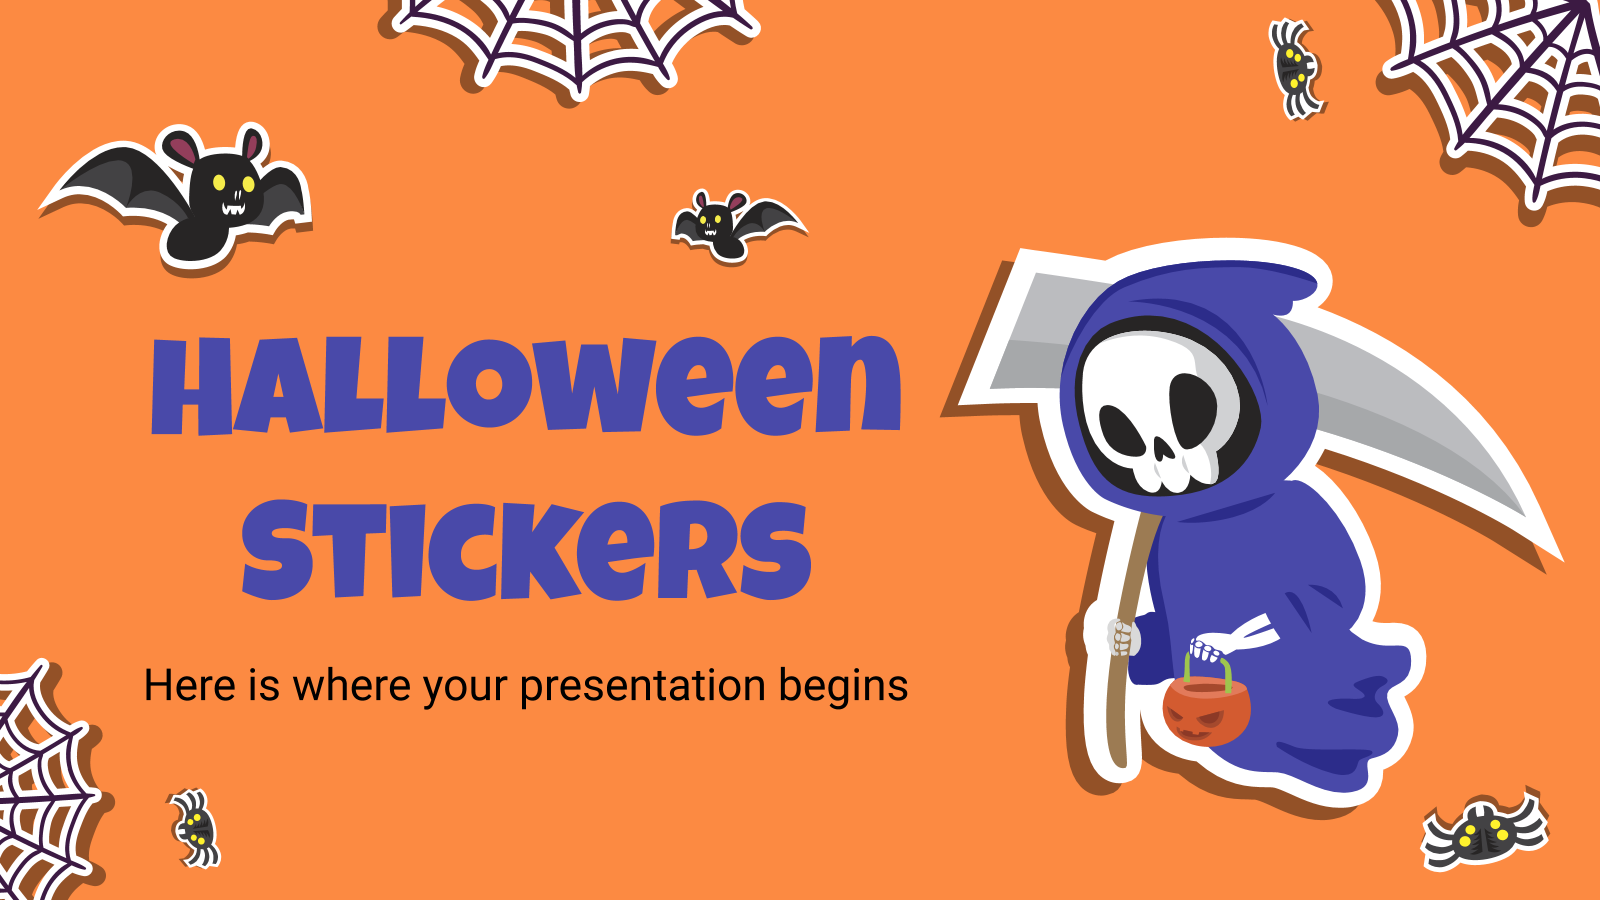 Halloween Stickers presentation template